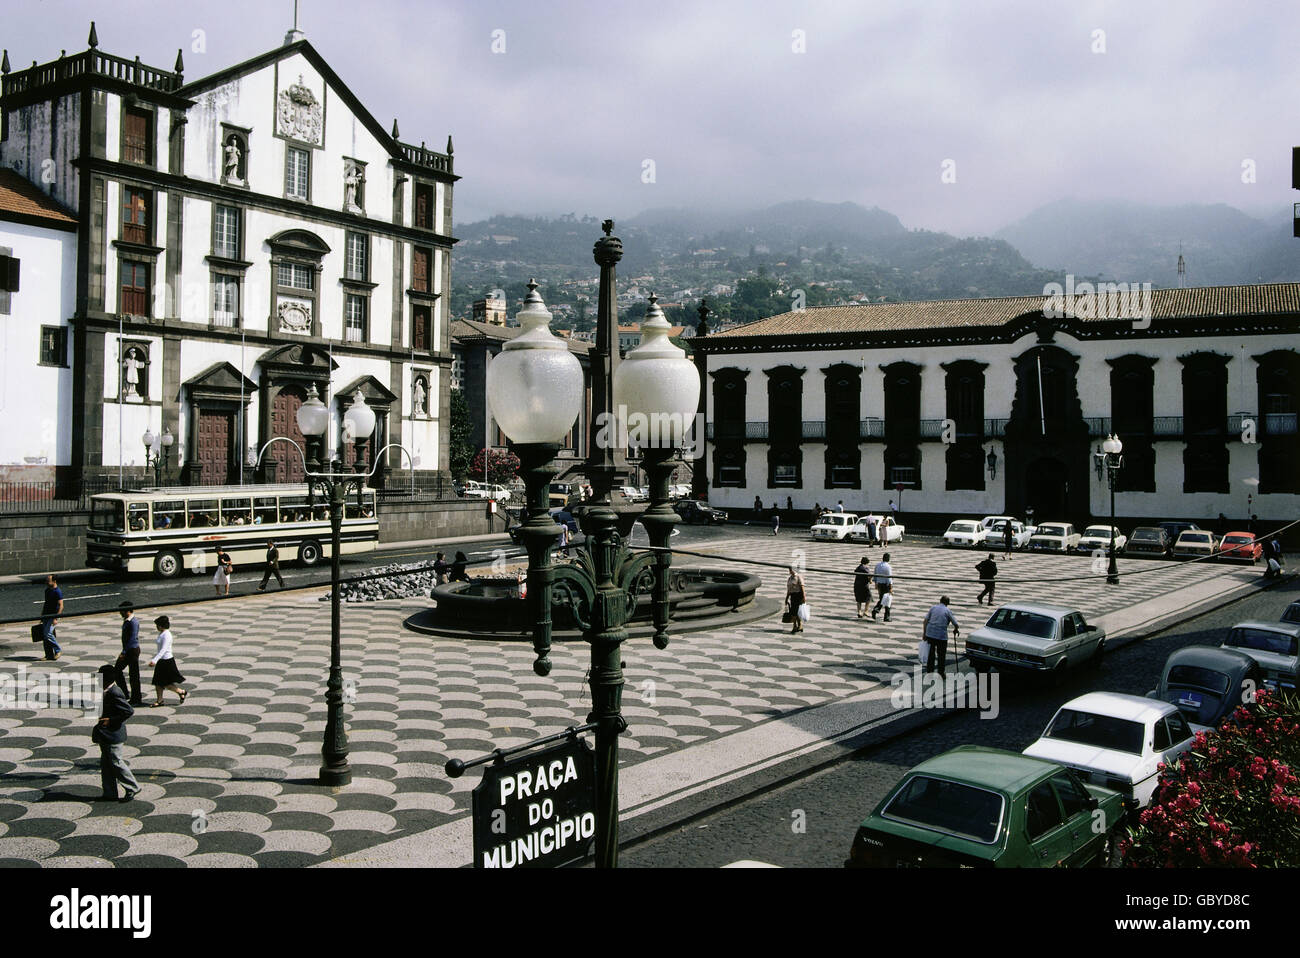 geography / travel, Portugal, Madeira, Funchal, Praca do Municipio with collegiate church Sao Joao Evangeliste and - Stock Image